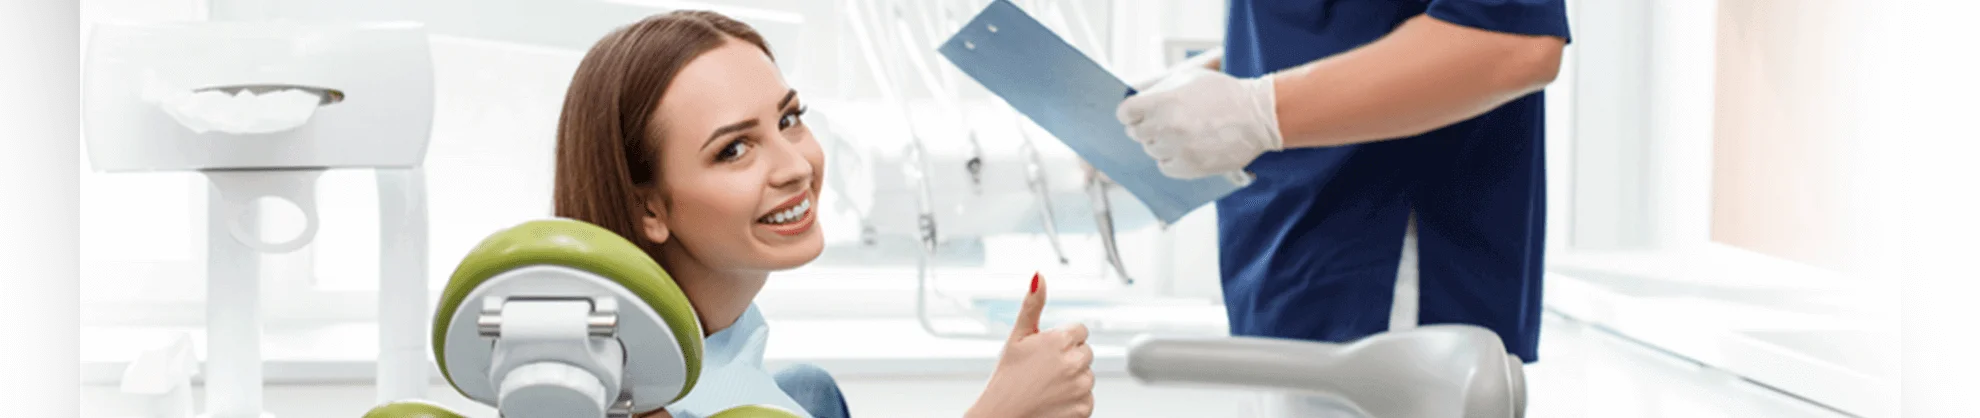 root canal treatment background